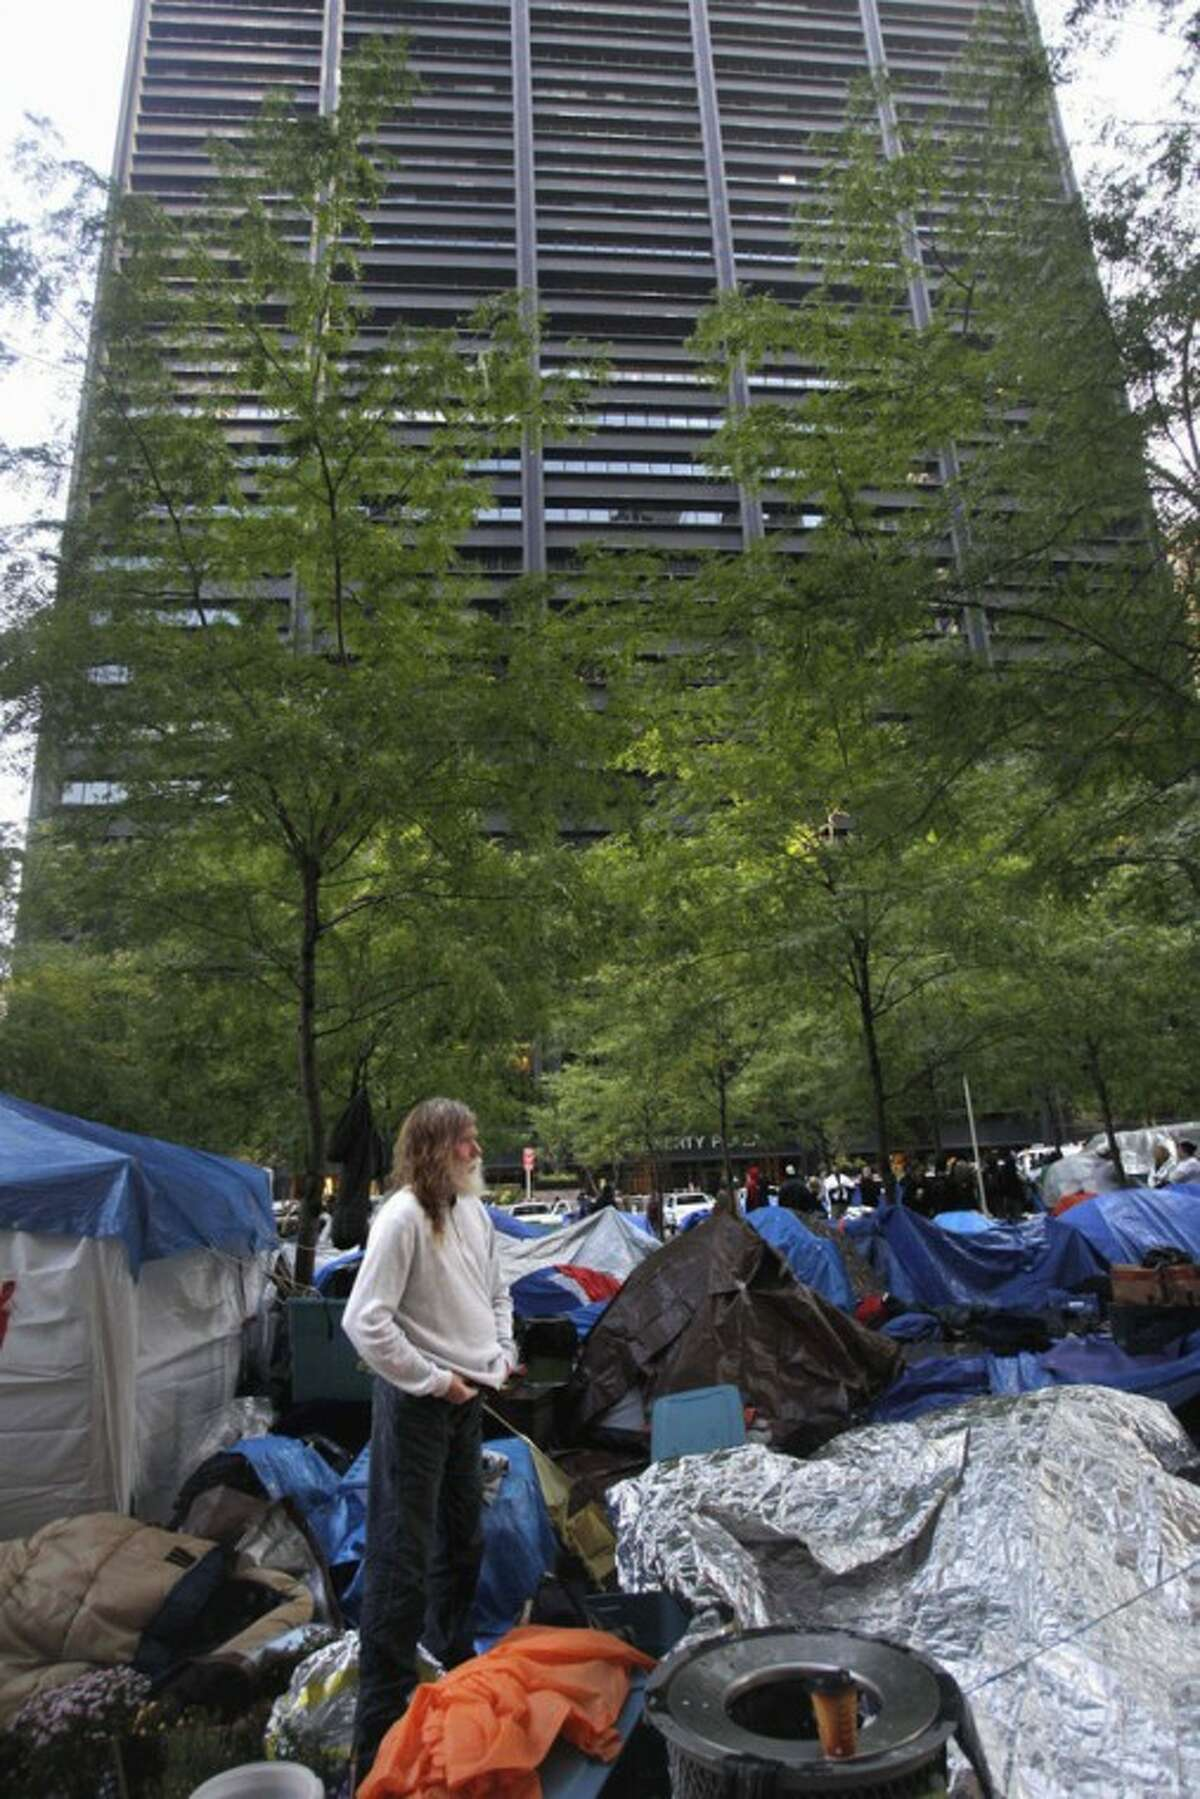 """FILE - In this Oct. 20, 2011 file photo, an Occupy Wall Street protester stands amid tarps and sleeping bags while a building owned by Brookfield Properties towers over Zuccotti Park in New York. Most Americans say politics makes them angry. But that doesn't mean there is wide support for the Wall Street protests against the nation's power brokers. The latest Associated Press-GfK poll shows that 37 percent of people do back the protests that have spread from New York to cities across the country. It's one of the first snapshots of how the public views the """"Occupy Wall Street"""" movement. (AP Photo/Seth Wenig, File)"""